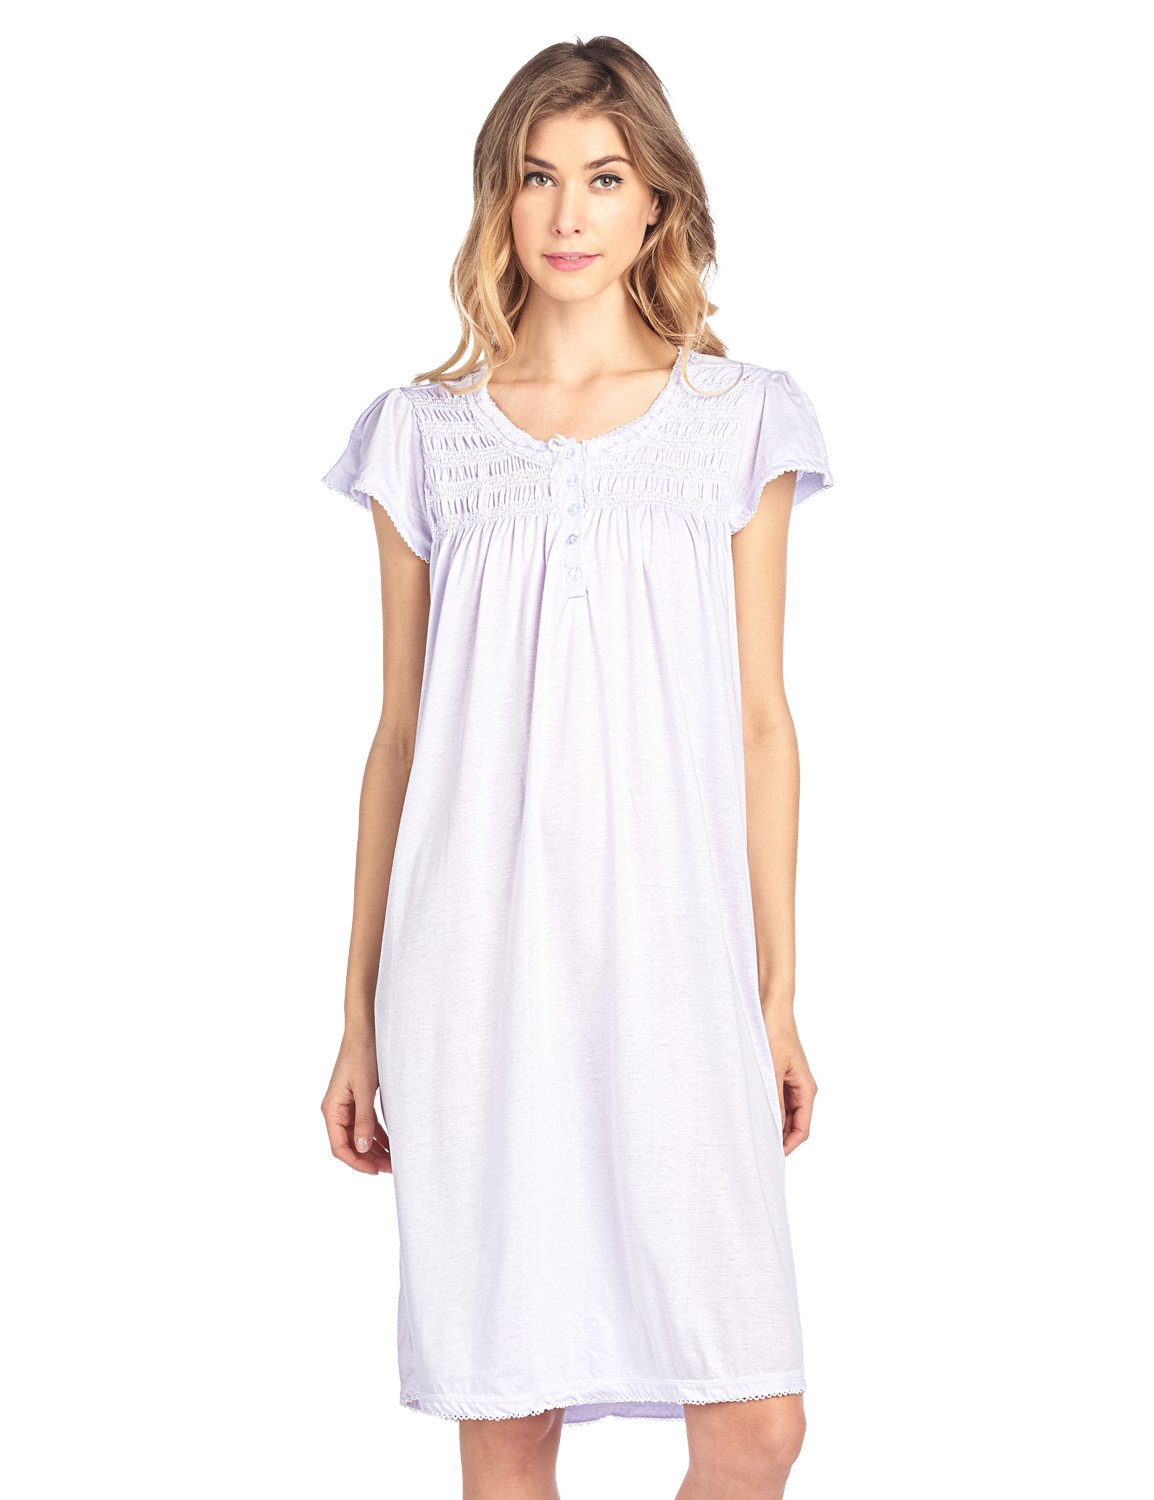 Casual Nights Women's Short Sleeve Smocked and Lace Nightgown - Purple - 4X-Large